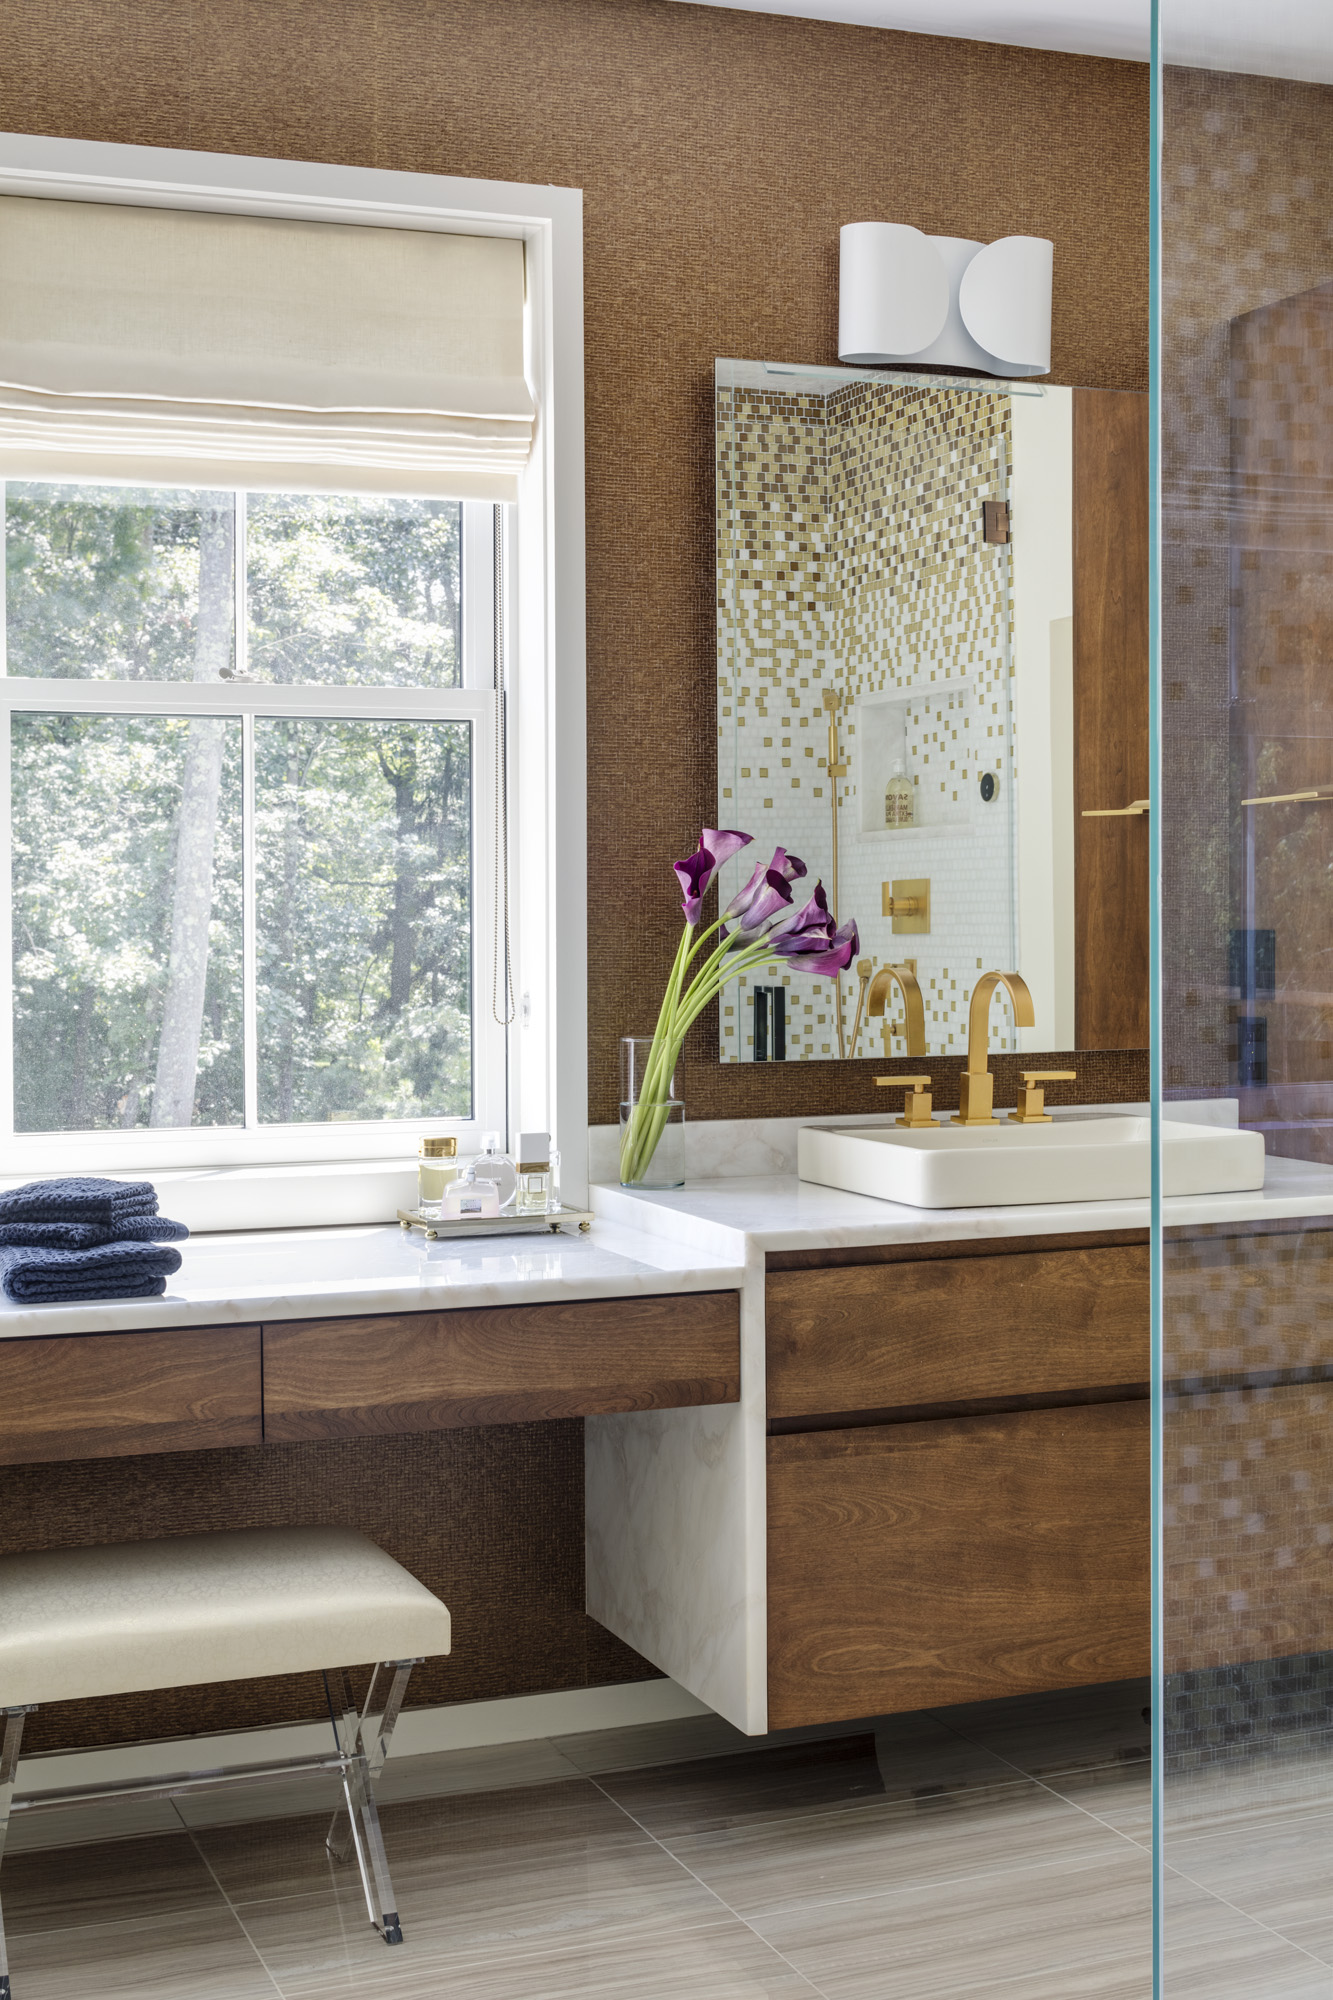 Patterned Élitis wallpaper complements the shower tile, reflected in the wallmirror. Chimera sconces are a fun, eclectic accent for the contemporary space.